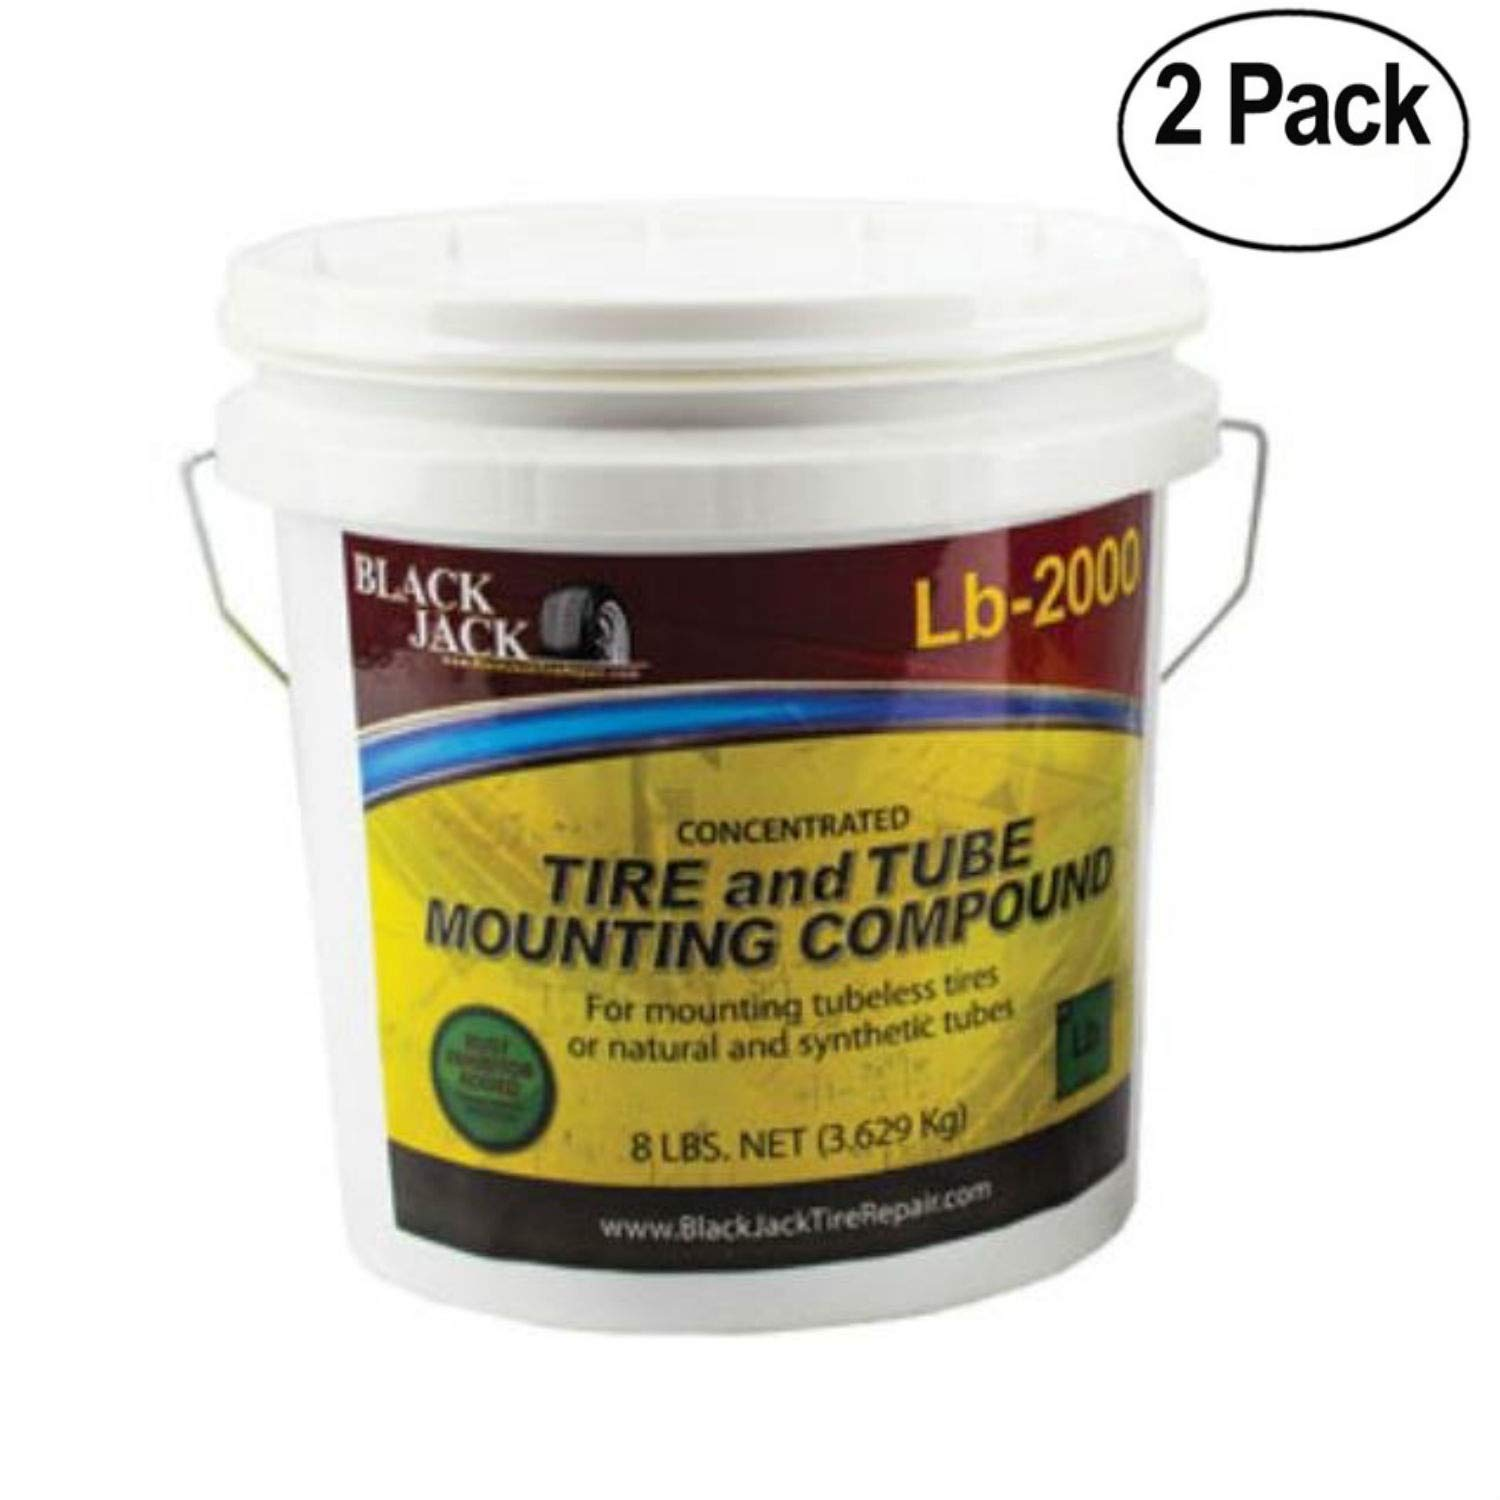 BJK Murphys Concentrated Paste, 8lb Pail-by-Black Jack TIRE Repair - Pack of 2 by BJK